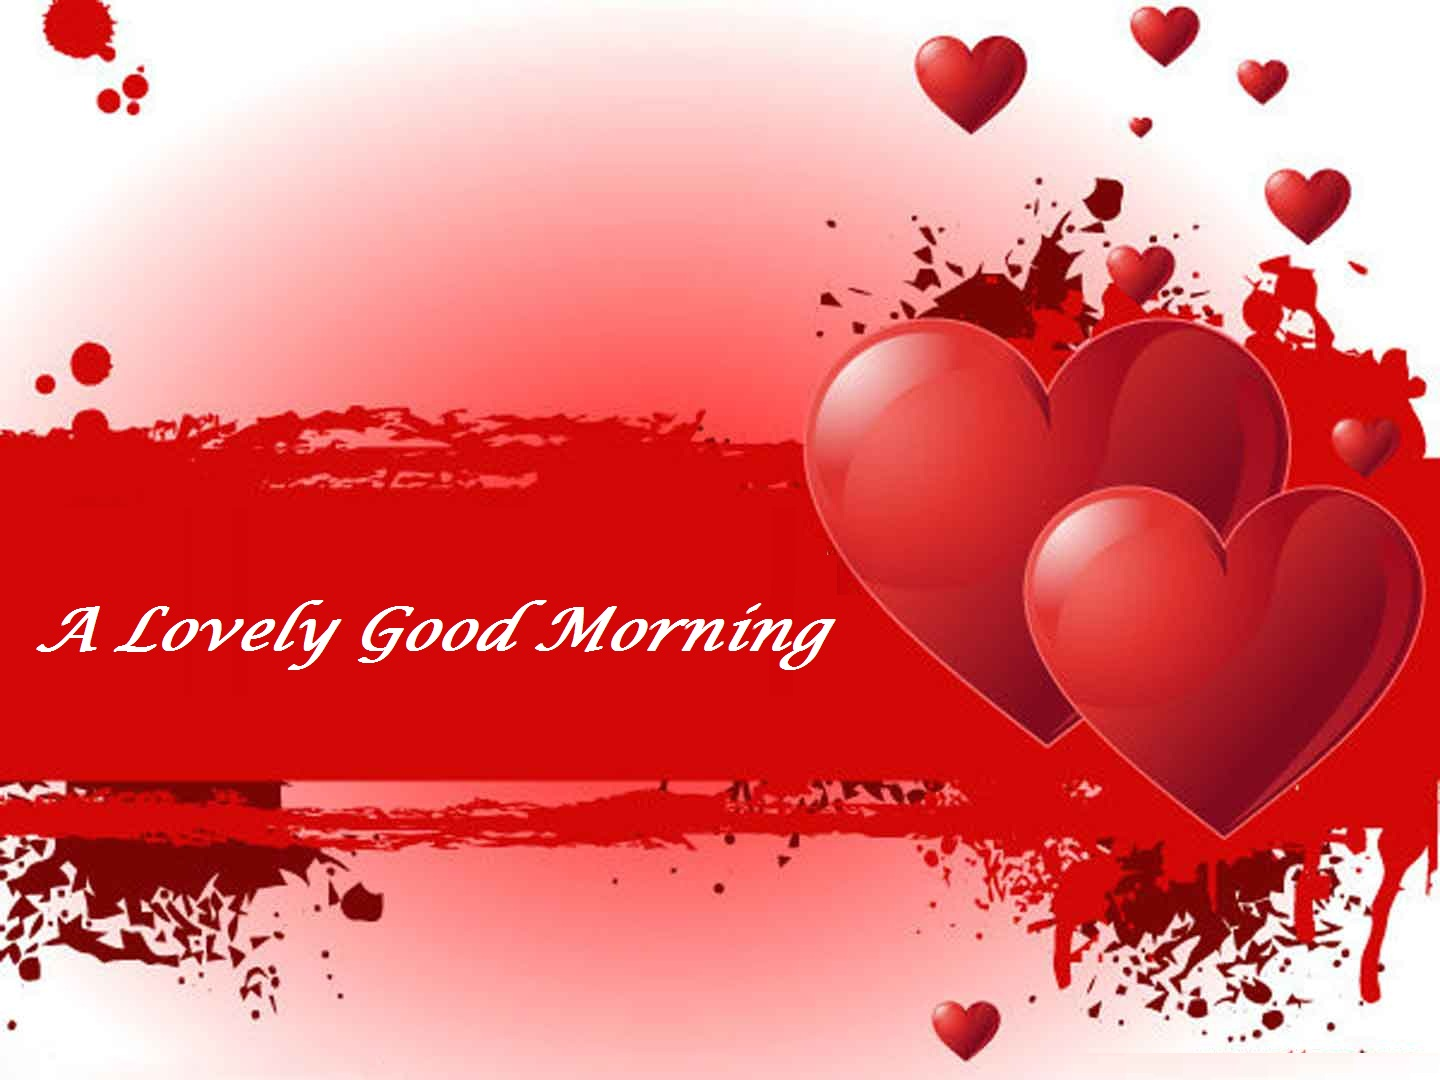 Lovely, Sweet Good Morning Ecards, Wallpaper, Pics